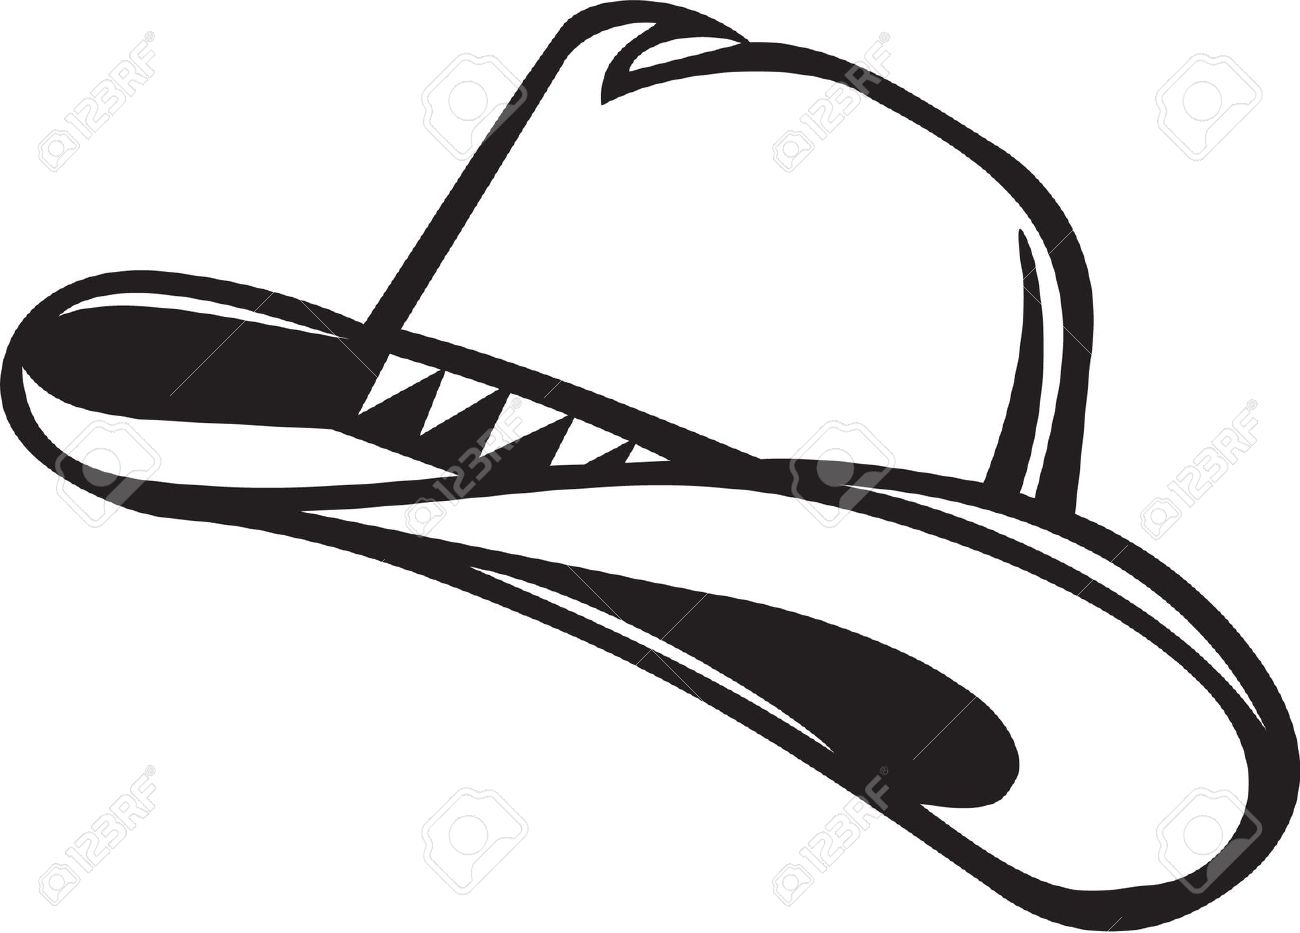 Cowboy hat clipart black and white image transparent download Best Cowboy Hat Clipart #16010 - Clipartion.com image transparent download